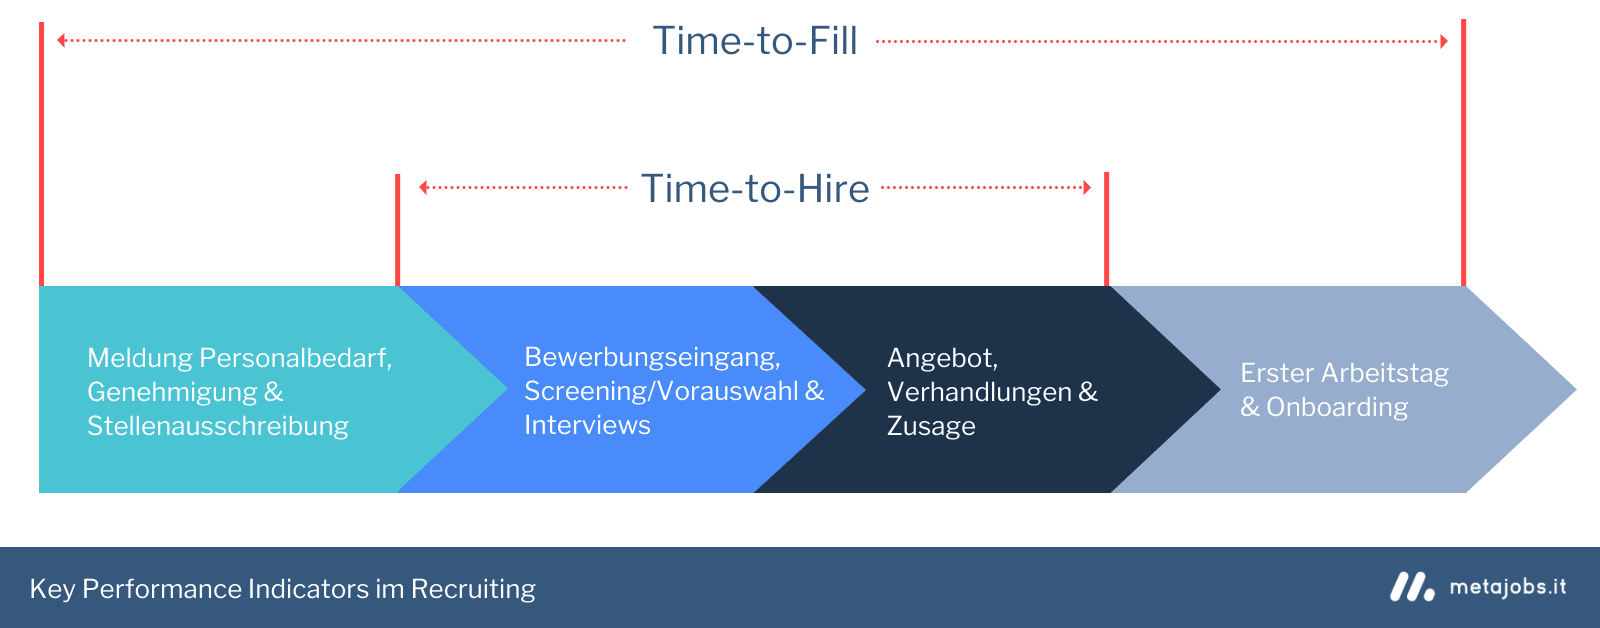 Time-to-hire und time-to-fill im Recruiting-Prozess